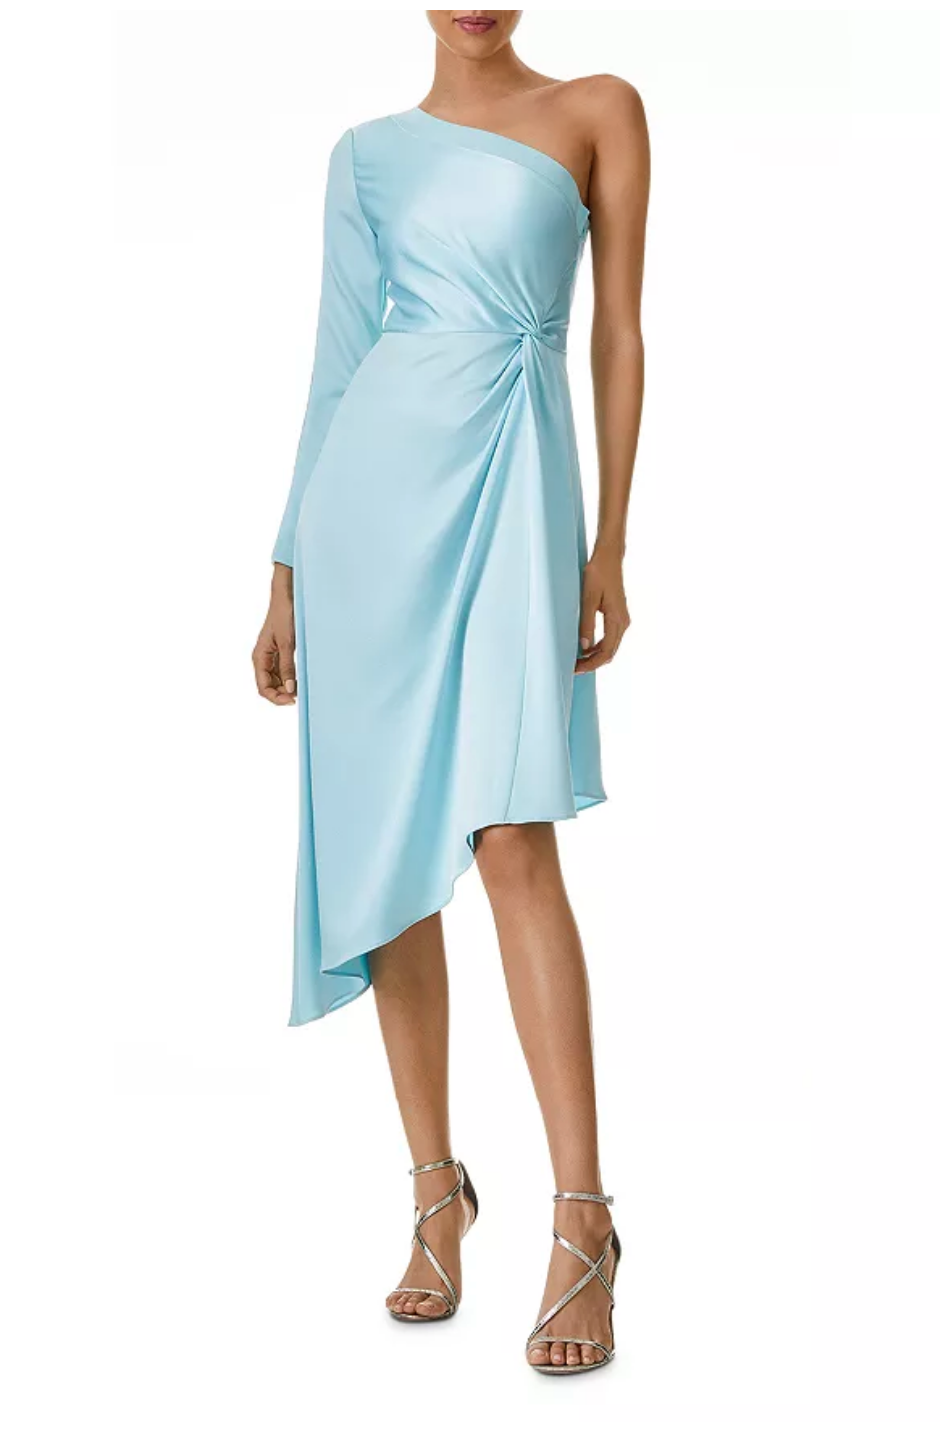 Sky blue satin midi dress with one long sleeve for spring wedding guest